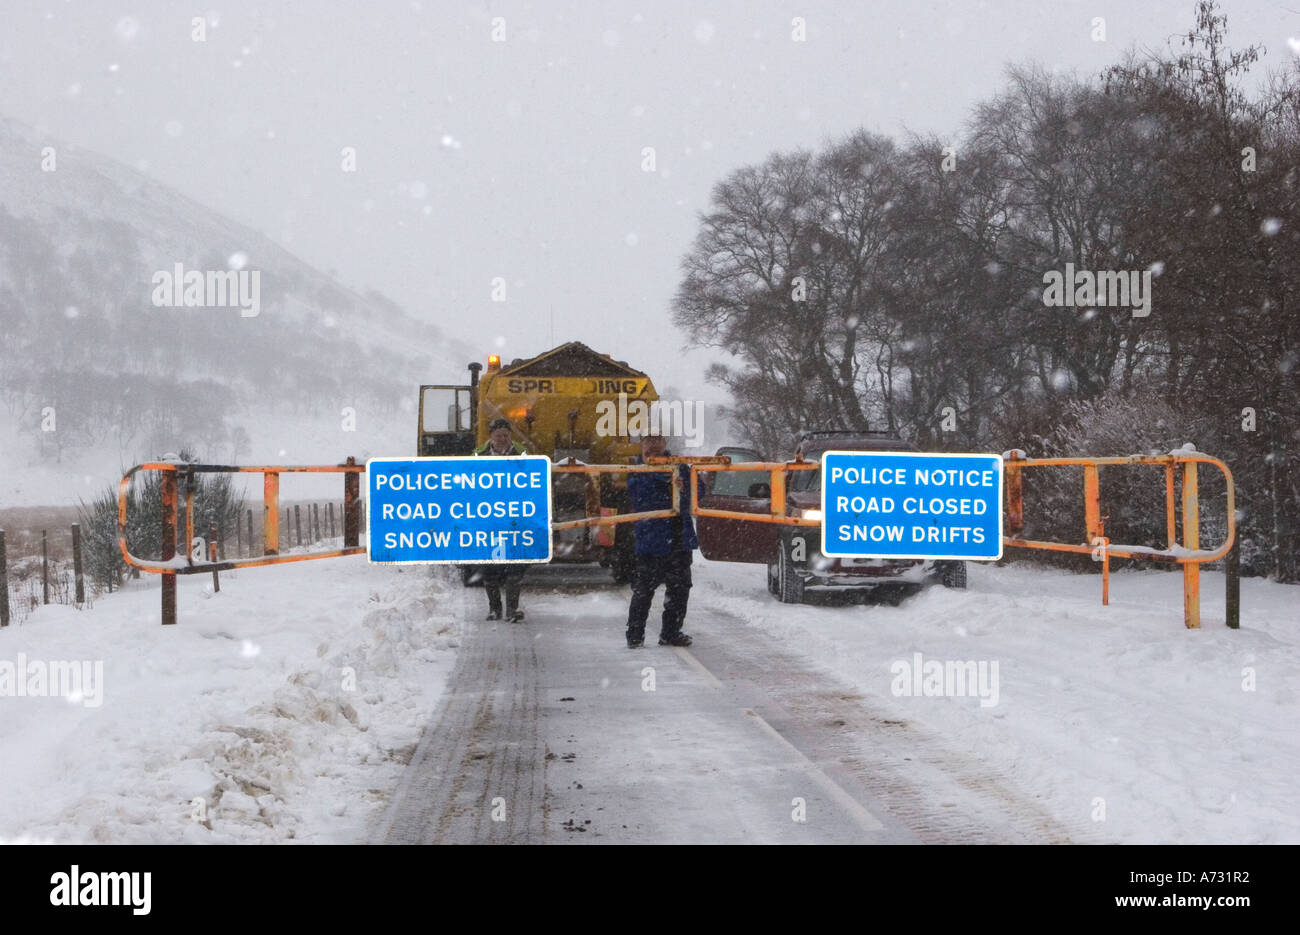 Chained Snow gates & access road closed sign; A93 Braemar, Glenshee, Blairgowrie road after winter blizzard, Cairngorms National Park, Scotland uk - Stock Image